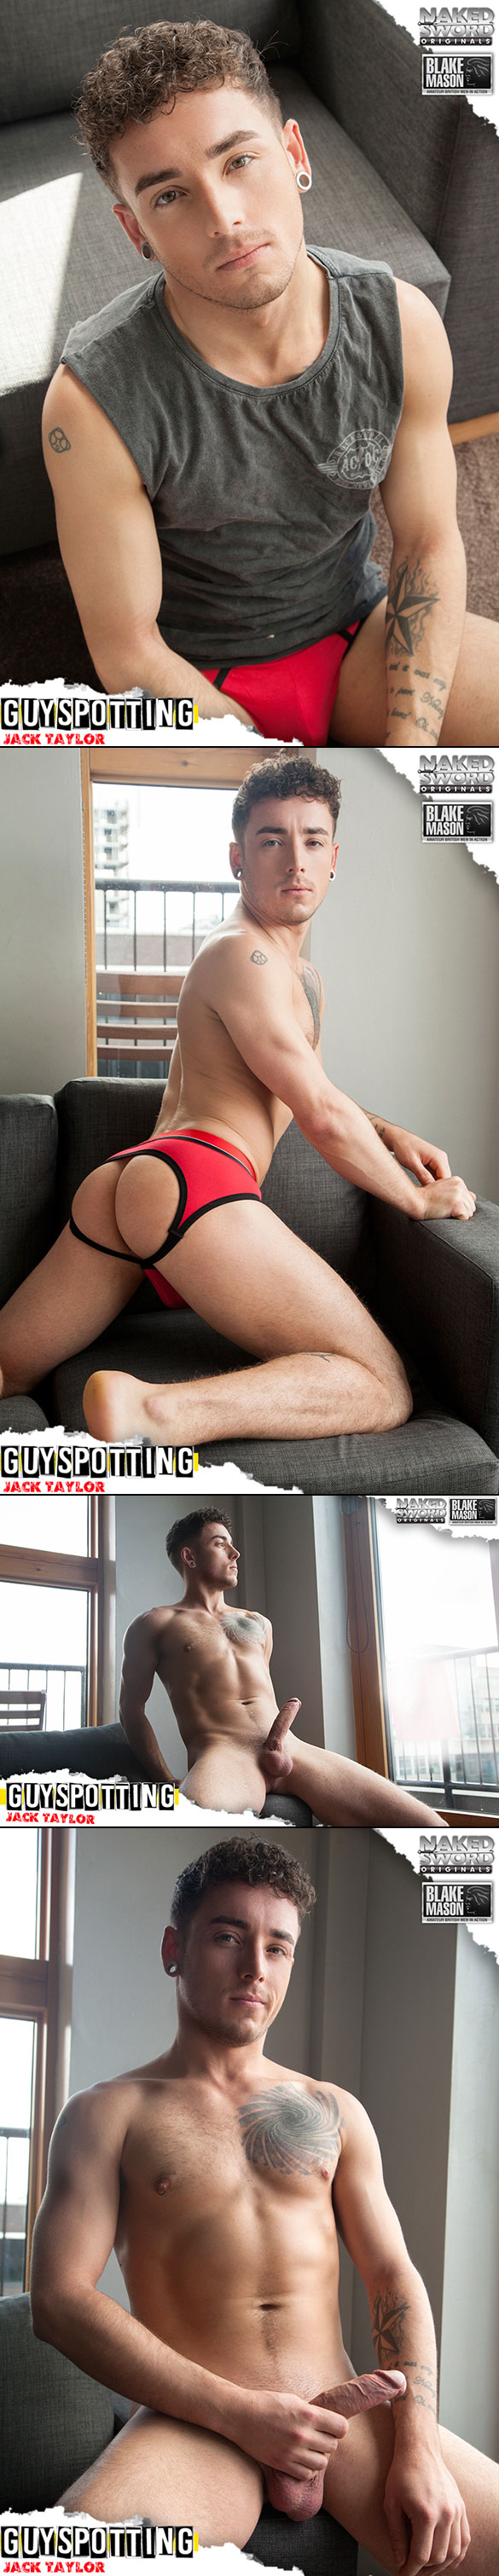 "NakedSword Originals: Jack Taylor and Leander flip fuck in ""Guyspotting - Episode 1: Hung & Hungover"""